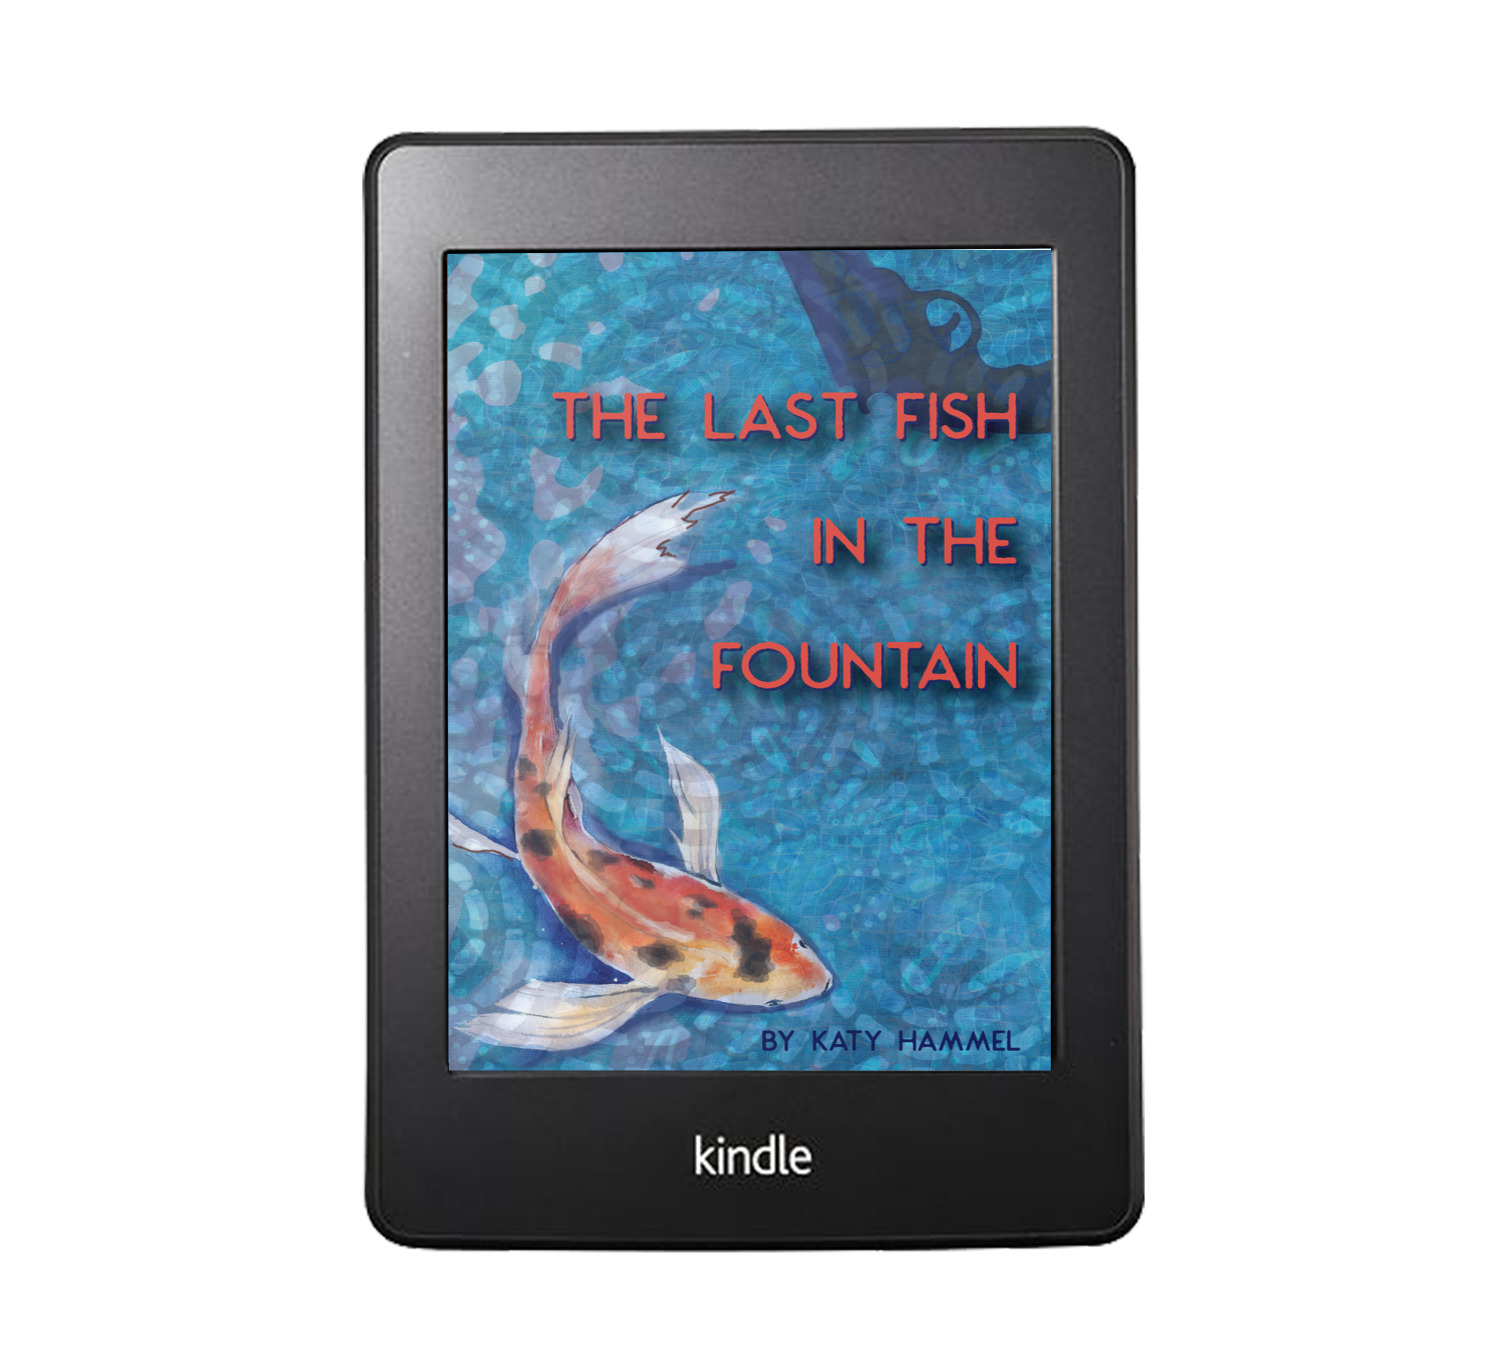 The Last Fish in the Fountain